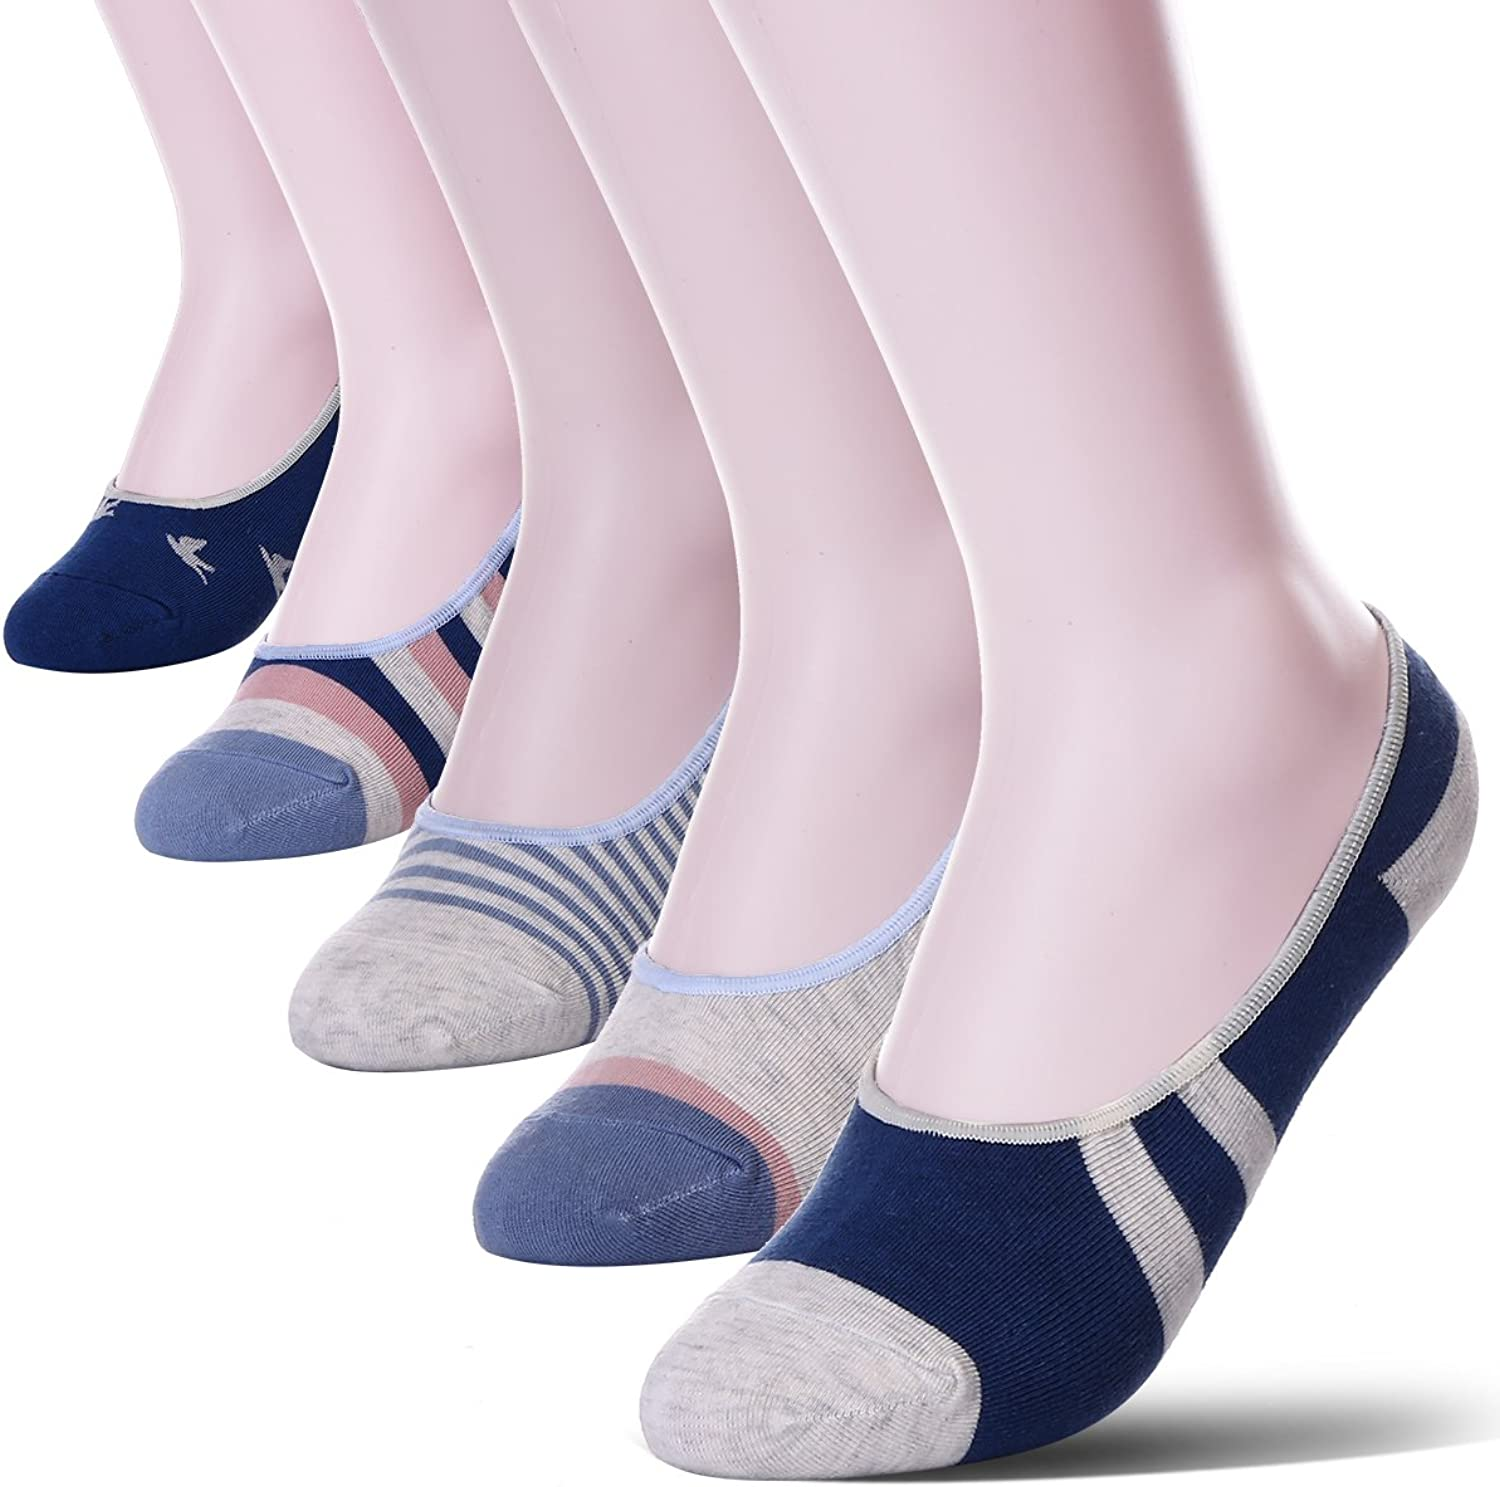 Womens 5 Pack Thin Casual No Show Socks Non Slip Flat Boat Liner Low Cut Ladies Invisible Footies Low Profile Socks